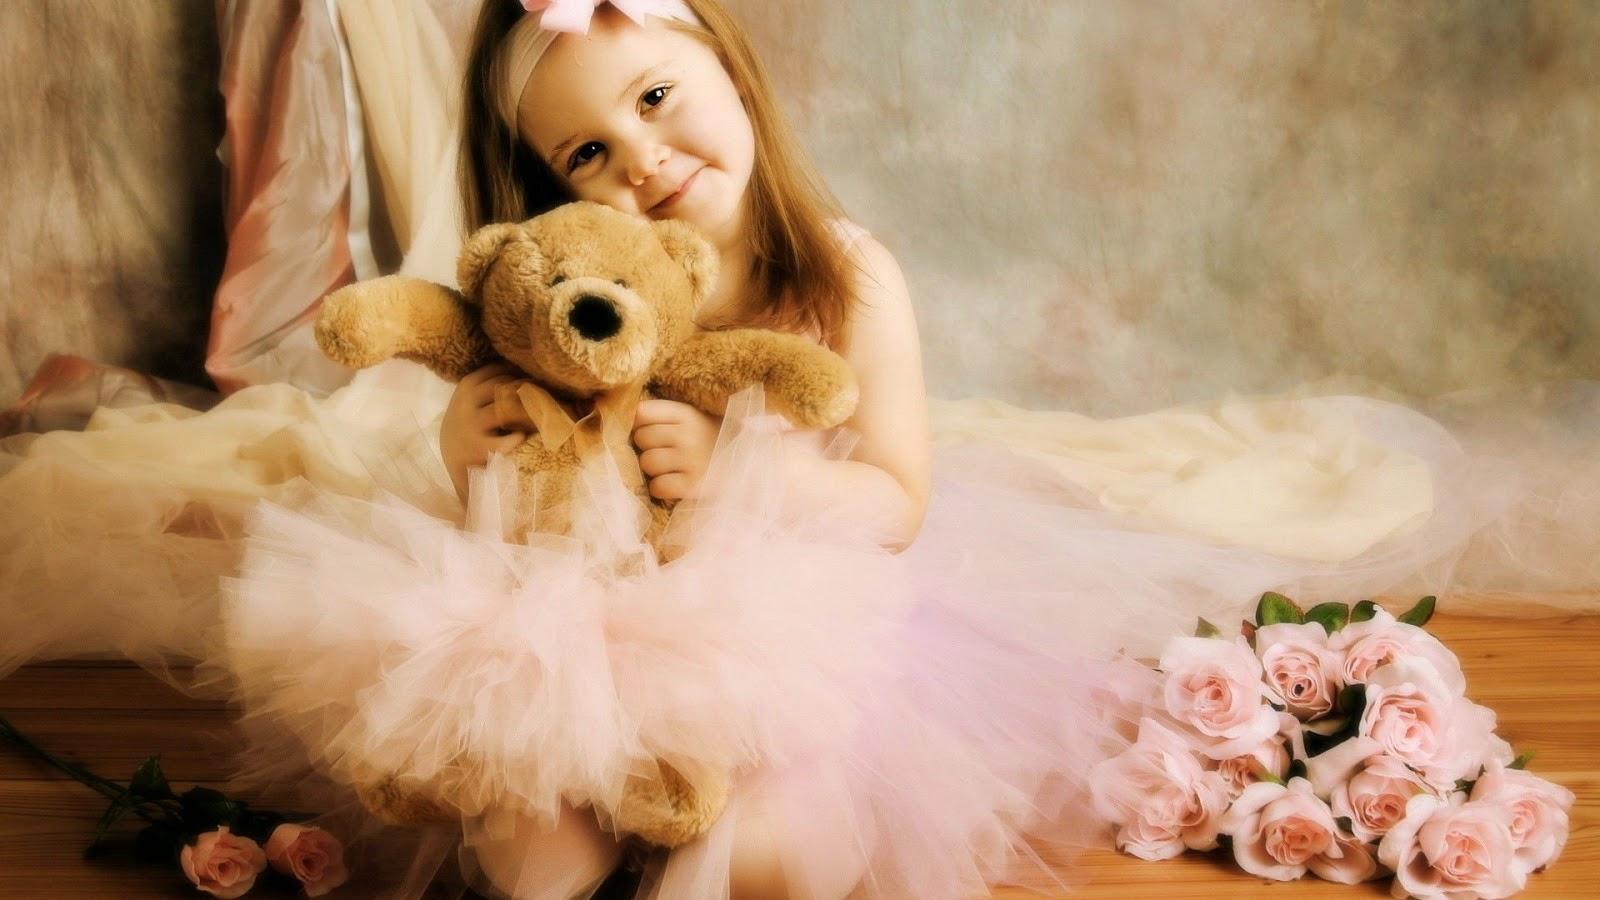 girls profile pic wallpapers 34 wallpapers � adorable